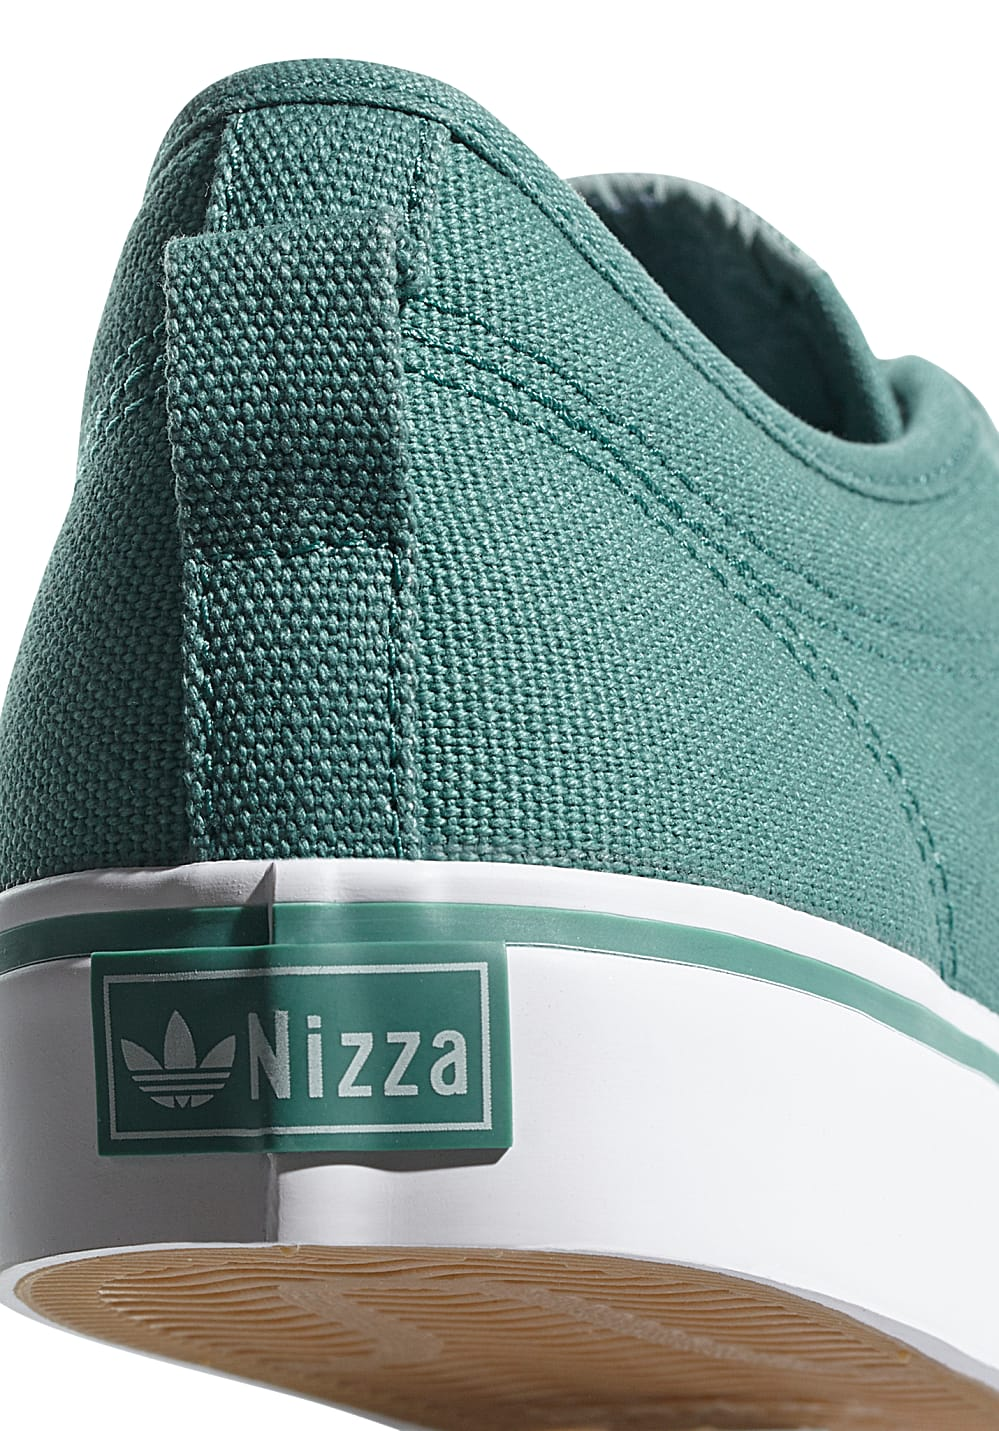 c8a33ccc1f5 Next. This product is currently out of stock. ADIDAS ORIGINALS. Nizza -  Sneakers for Men